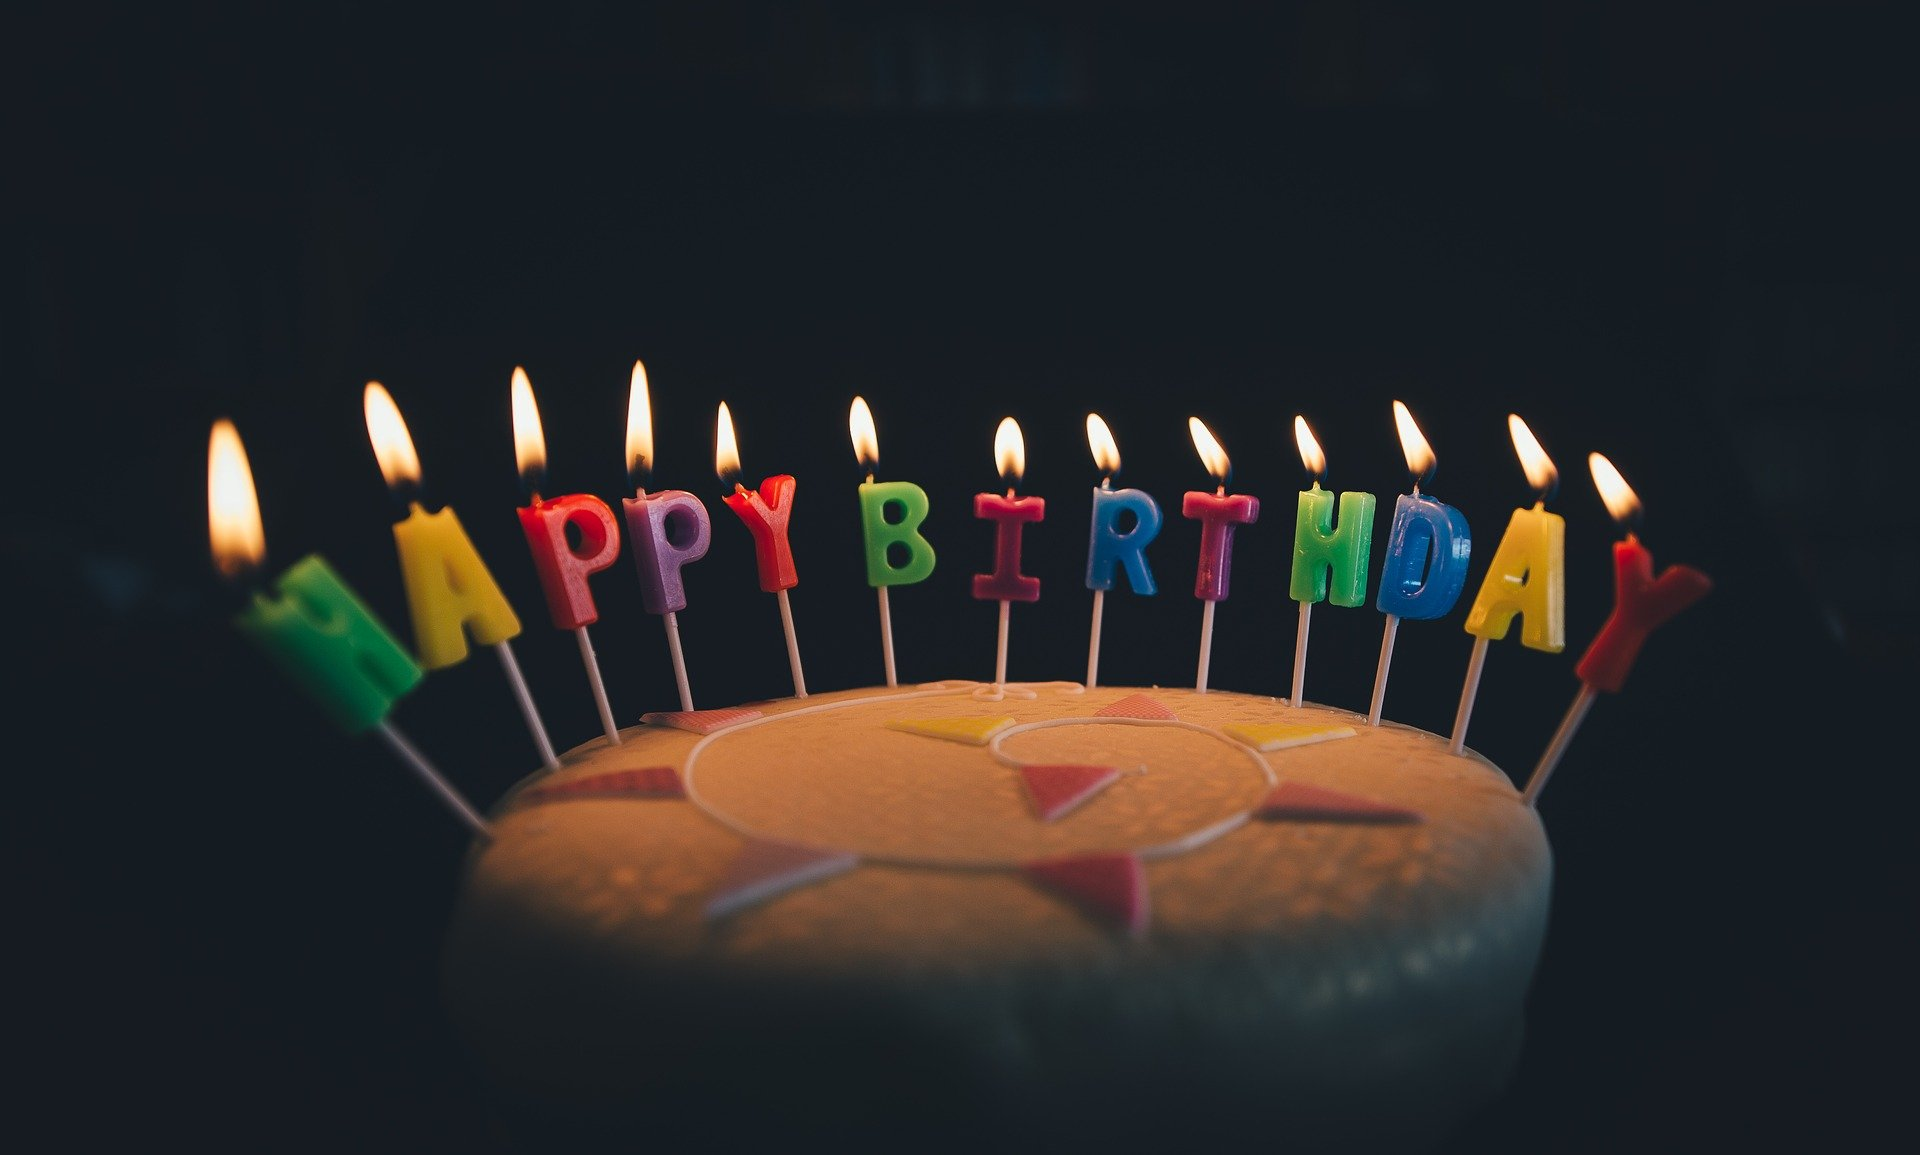 Pictured - A birthday cake with candles   Source: Pixabay